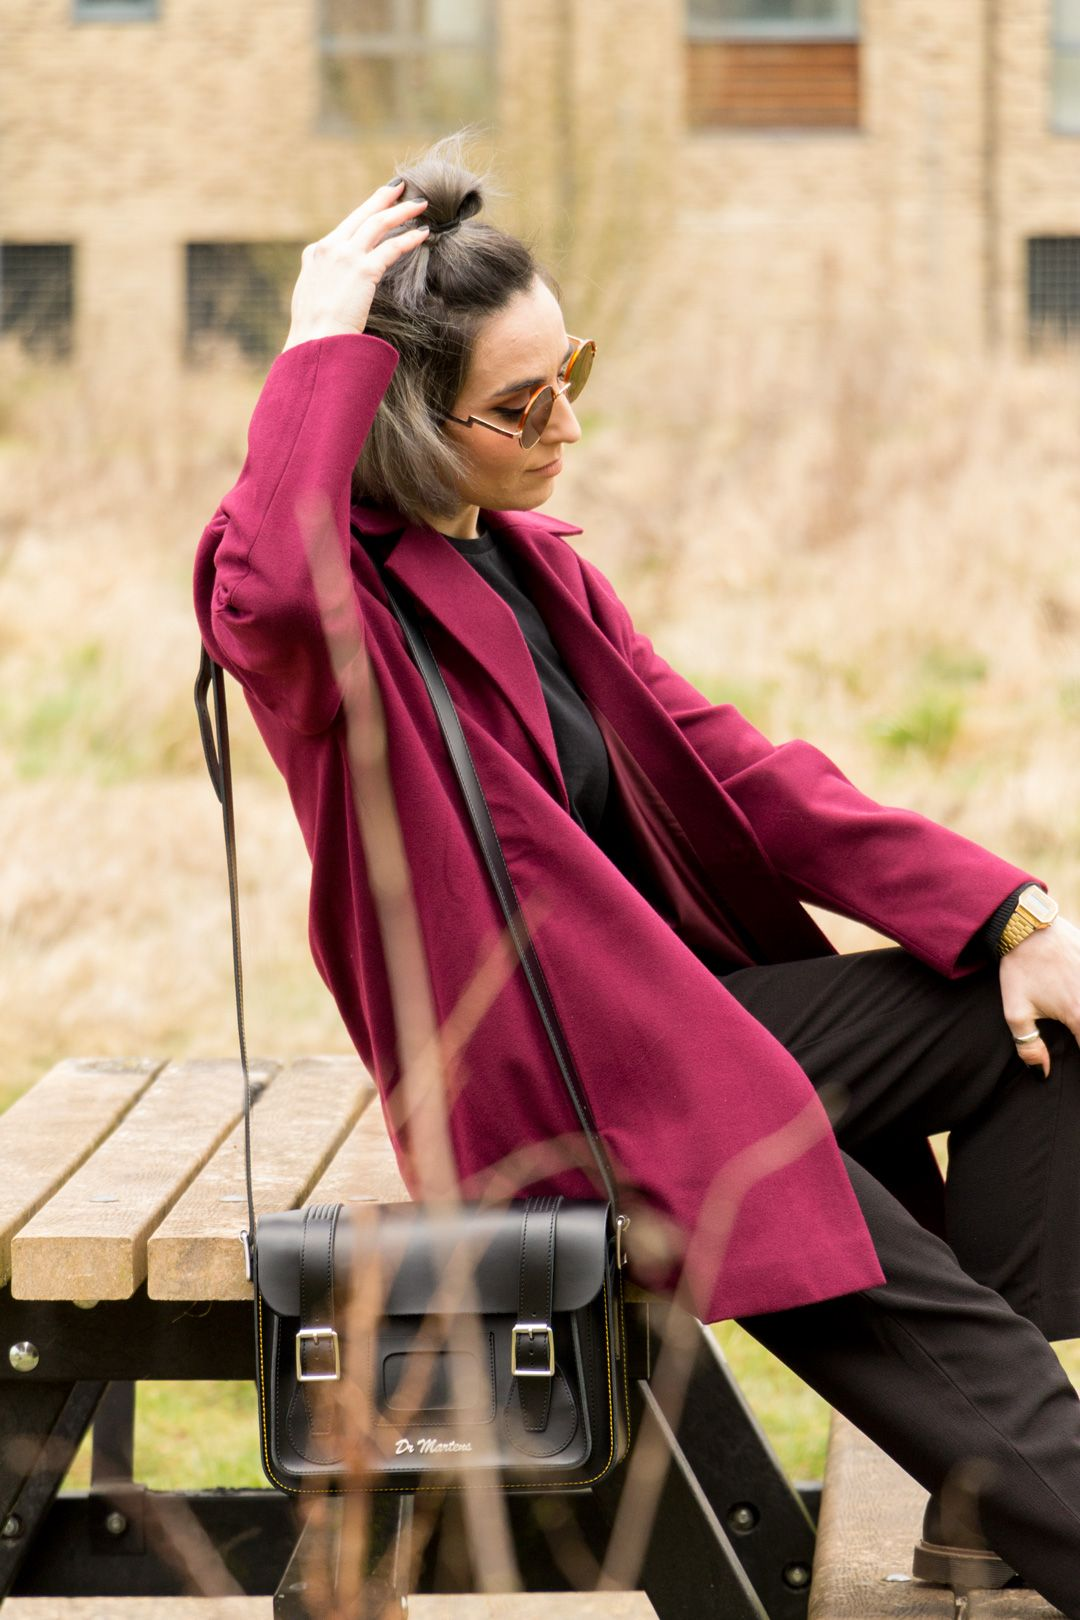 She talks Glam | Oversized Masculine Maroon Coat and all black underneath